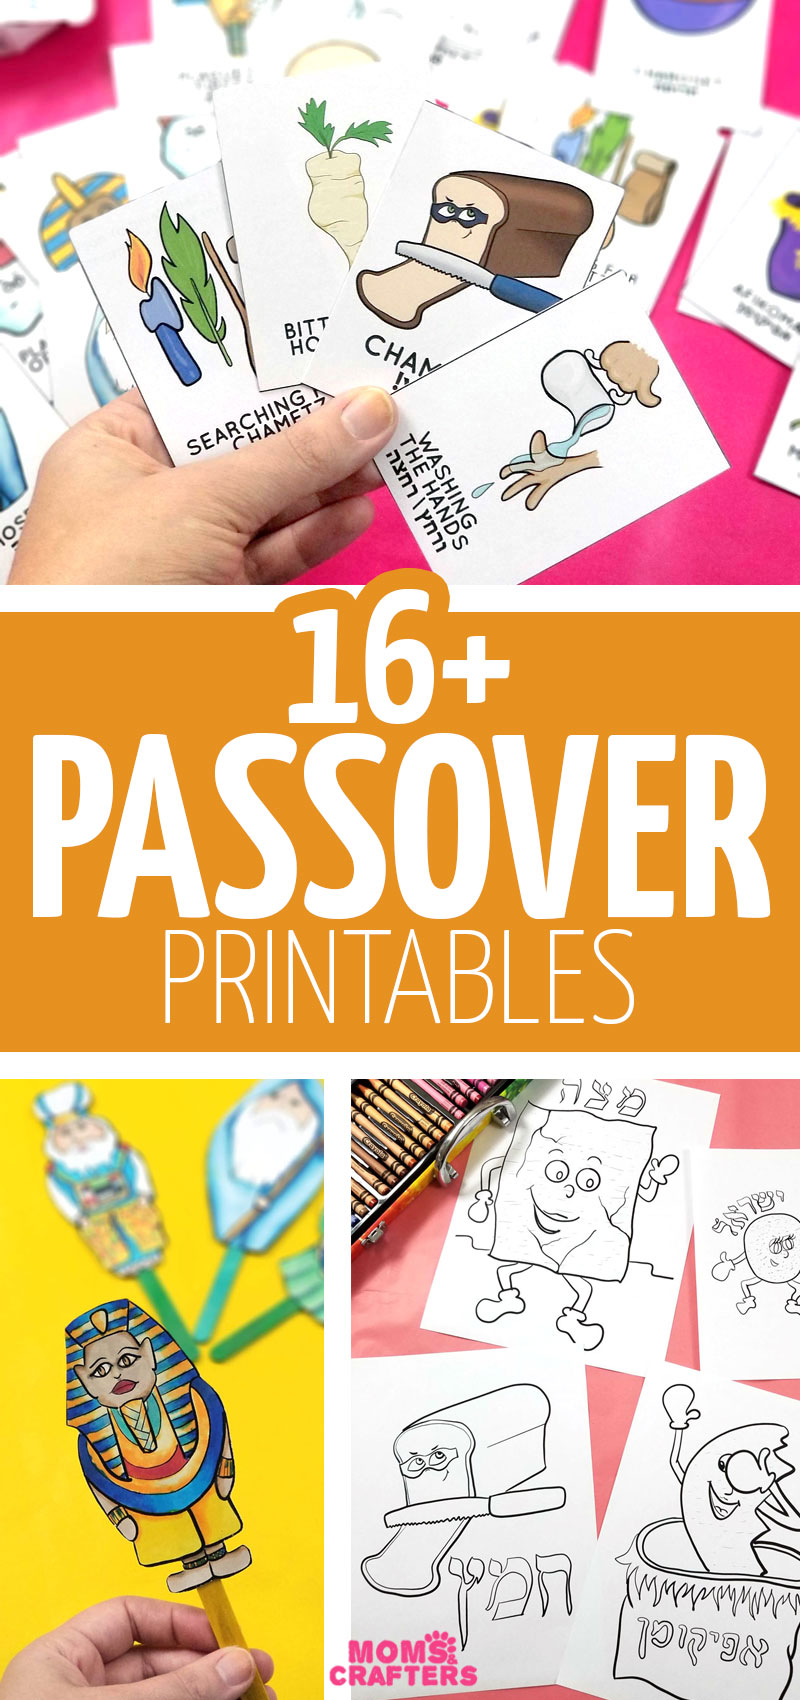 Click for over 16 cool Passover printables - including table decorations, kids activities crafts and coloring pages, Pesach makkot and ten plagues puppets, and more!